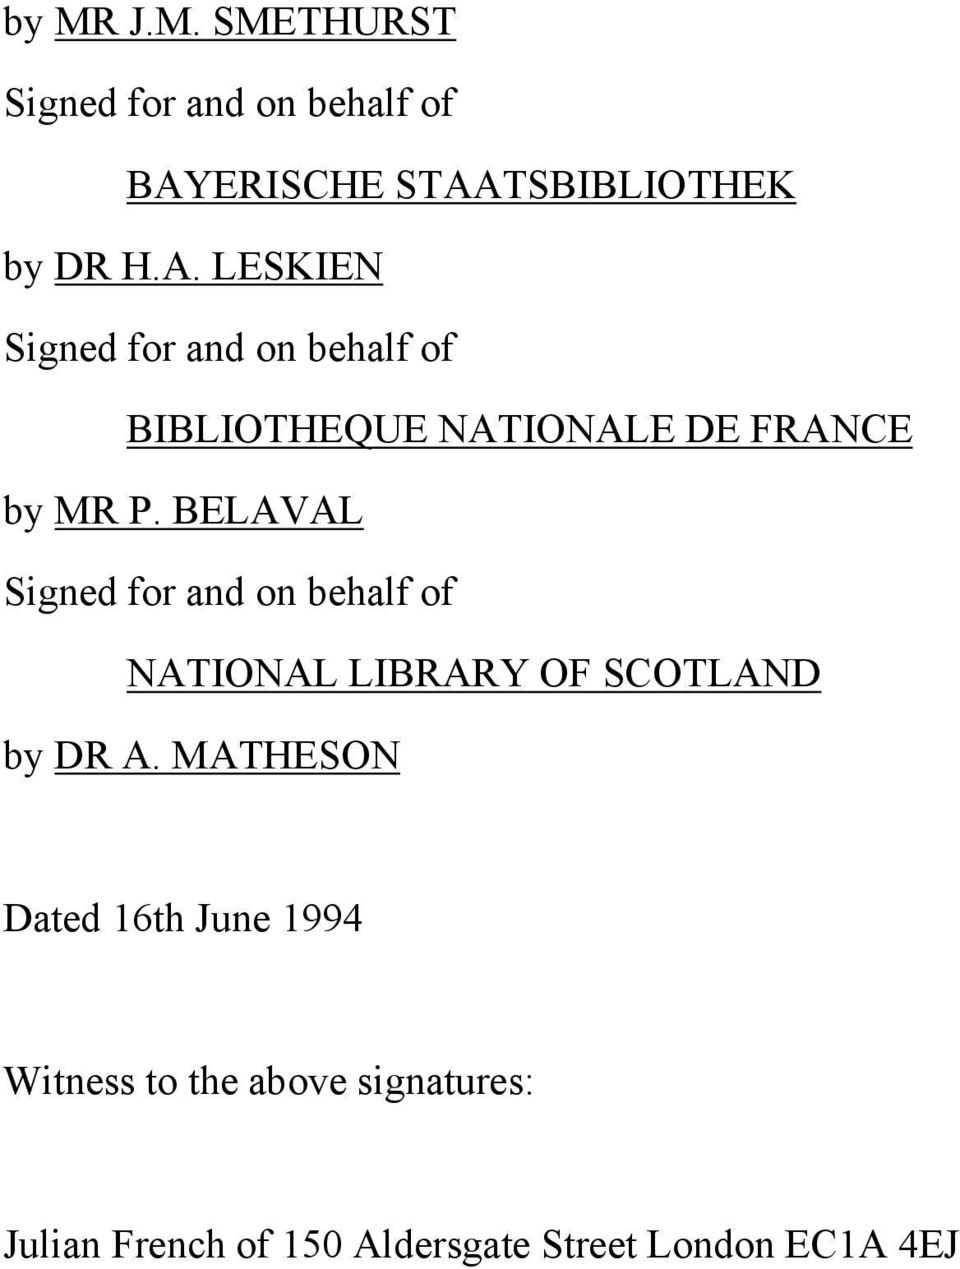 BELAVAL Signed for and on behalf of NATIONAL LIBRARY OF SCOTLAND by DR A.